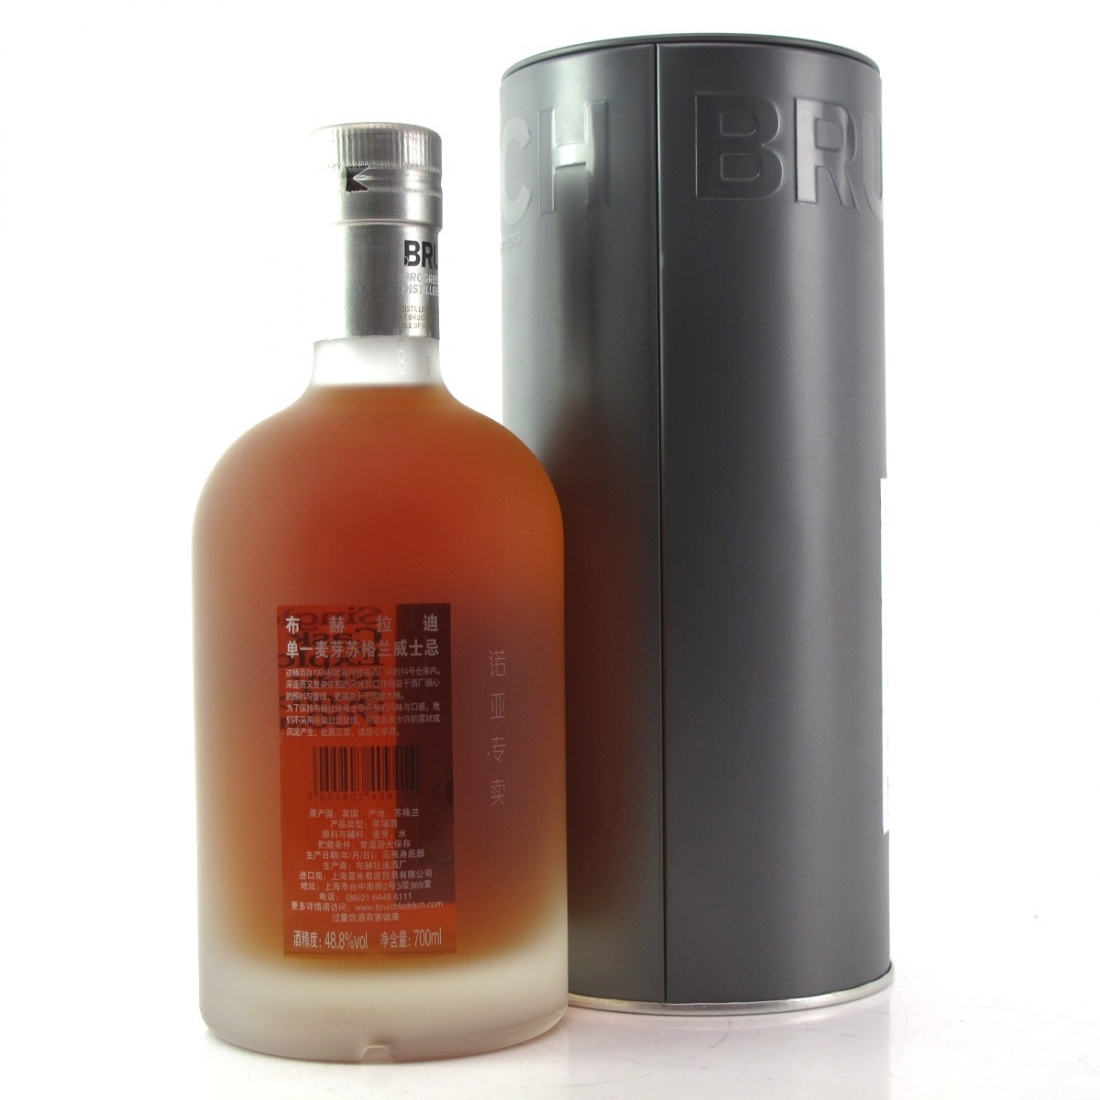 Bruichladdich 1991 Micro Provenance Single Cask 25 Year Old #15/287-22 / China Exclusive